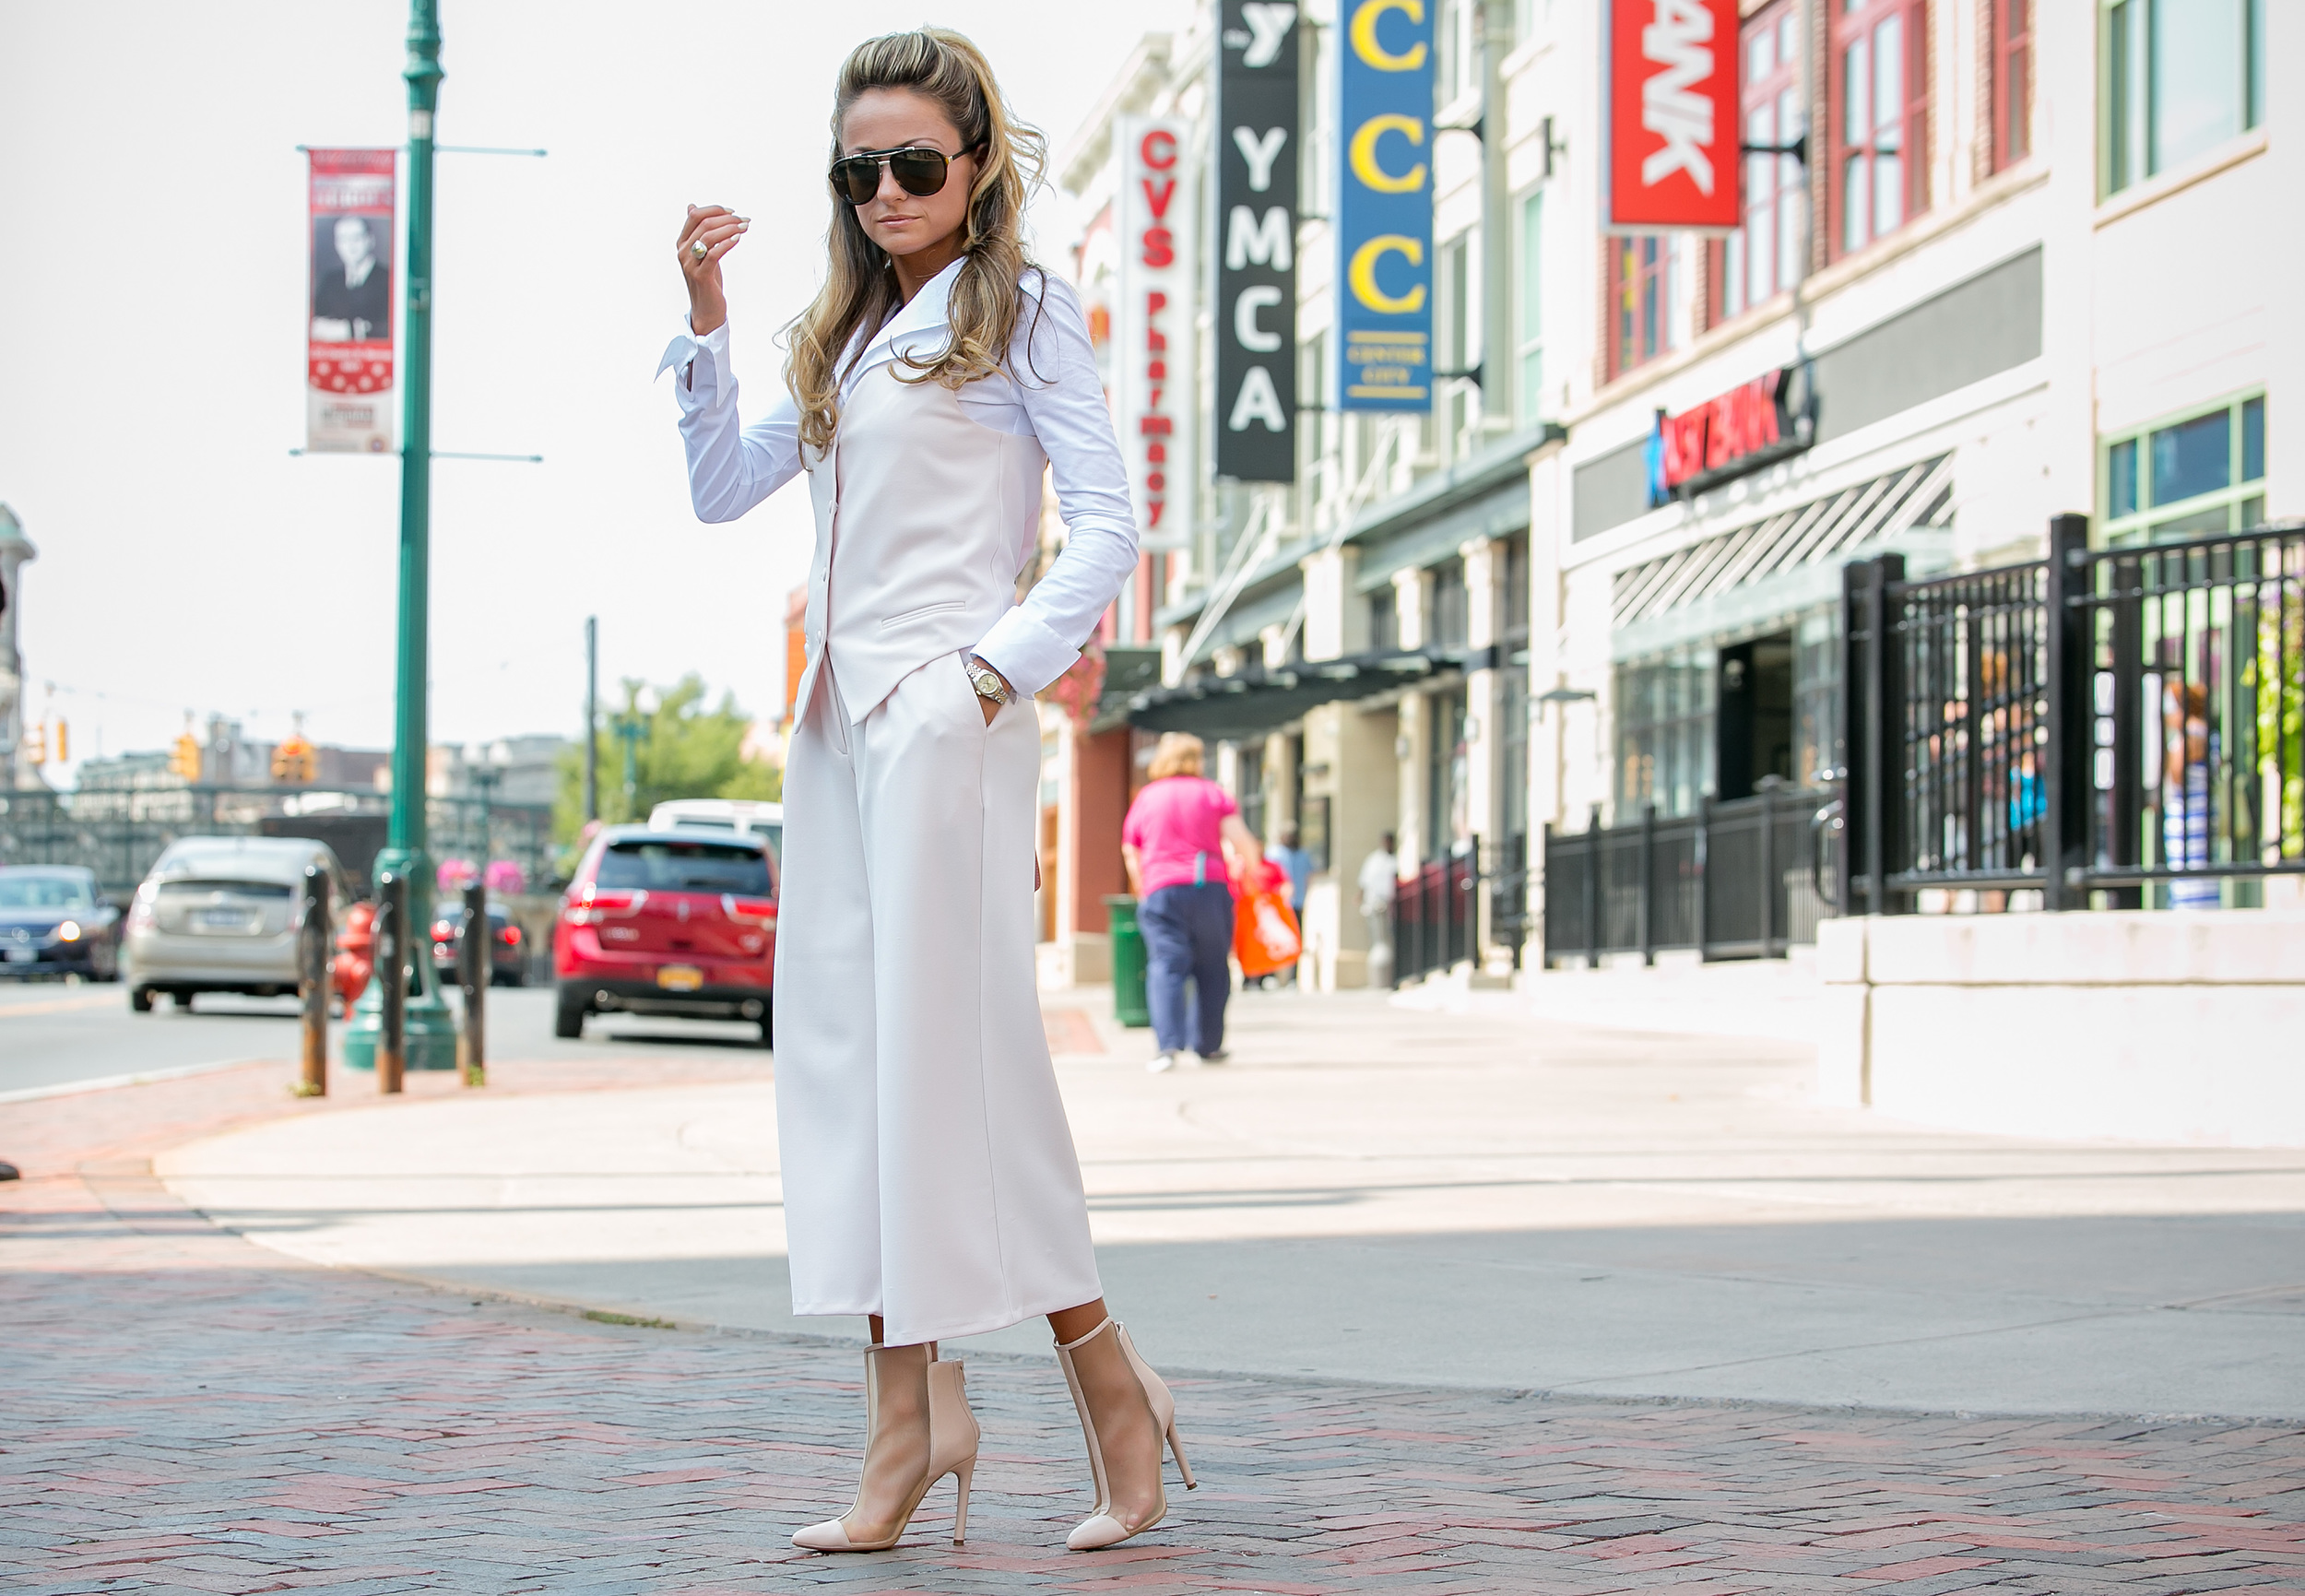 Street style blogger North of Manhattan in co-ord set from Asos, Reed Krakoff shoes, Marc Jacobs sunglasses, and accessories by David Yurman, Chanel, and Rolex.